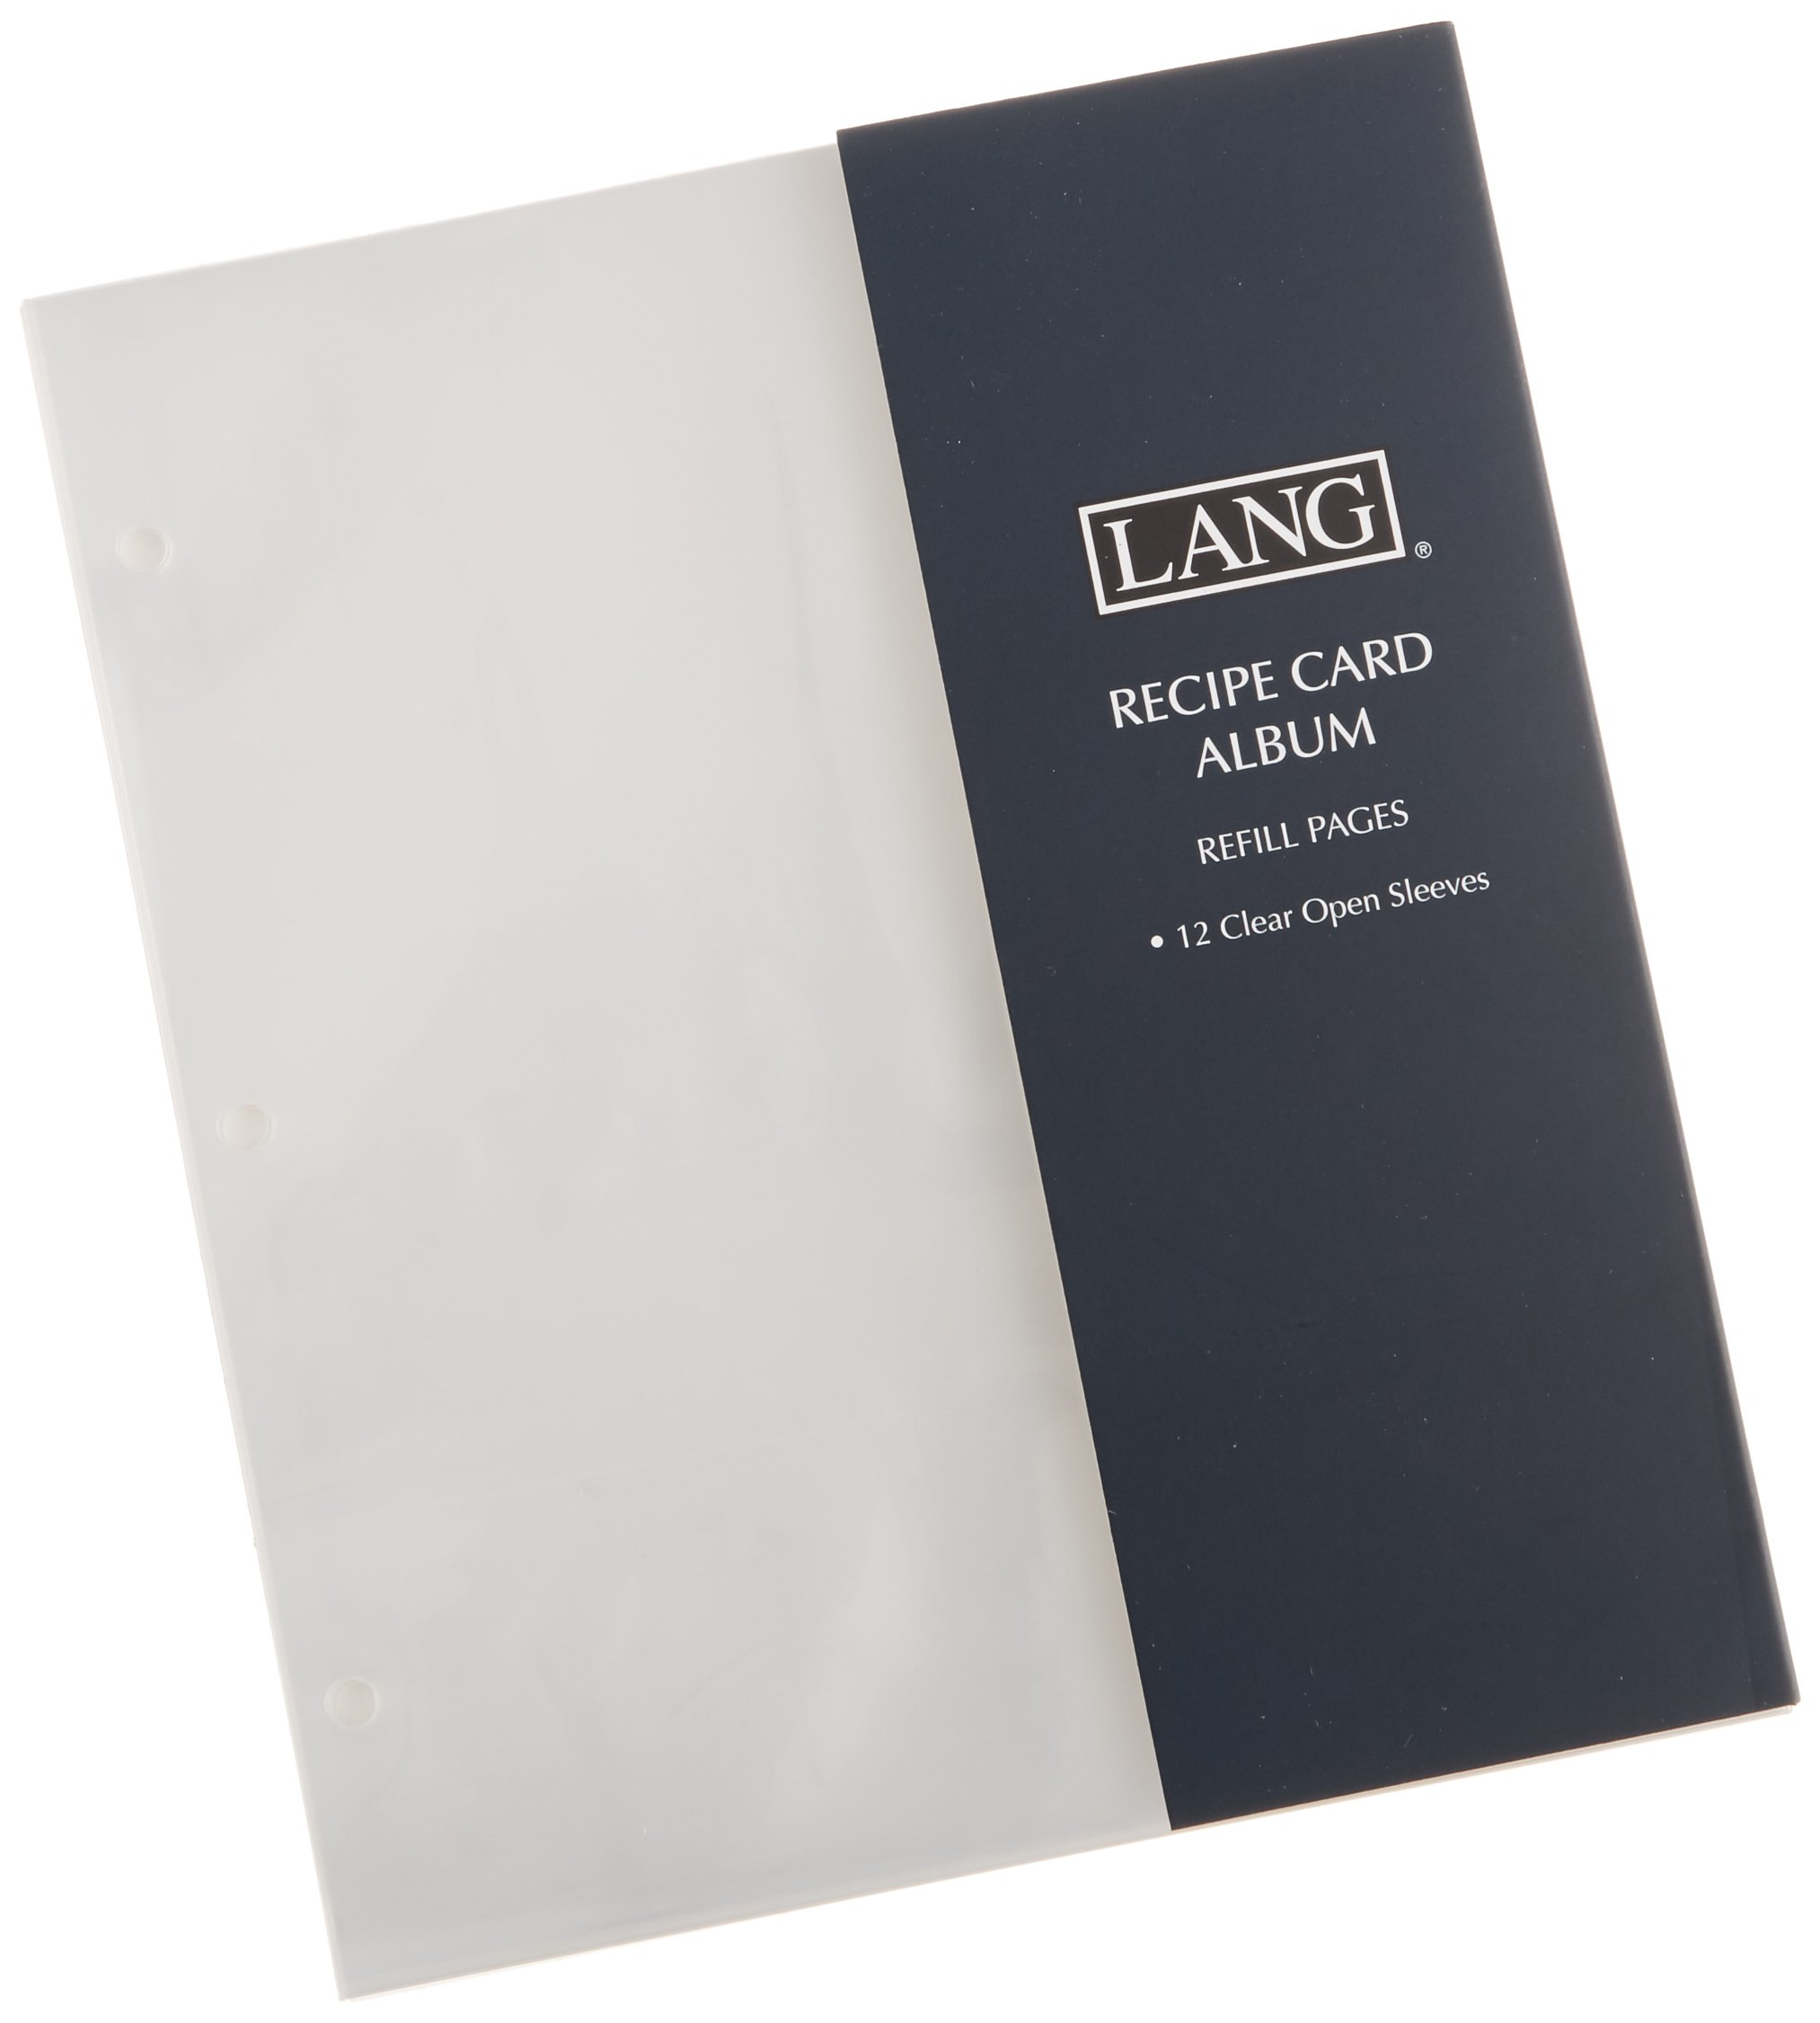 Lang Refill Pages, Open Sleeve for Recipe Card Album